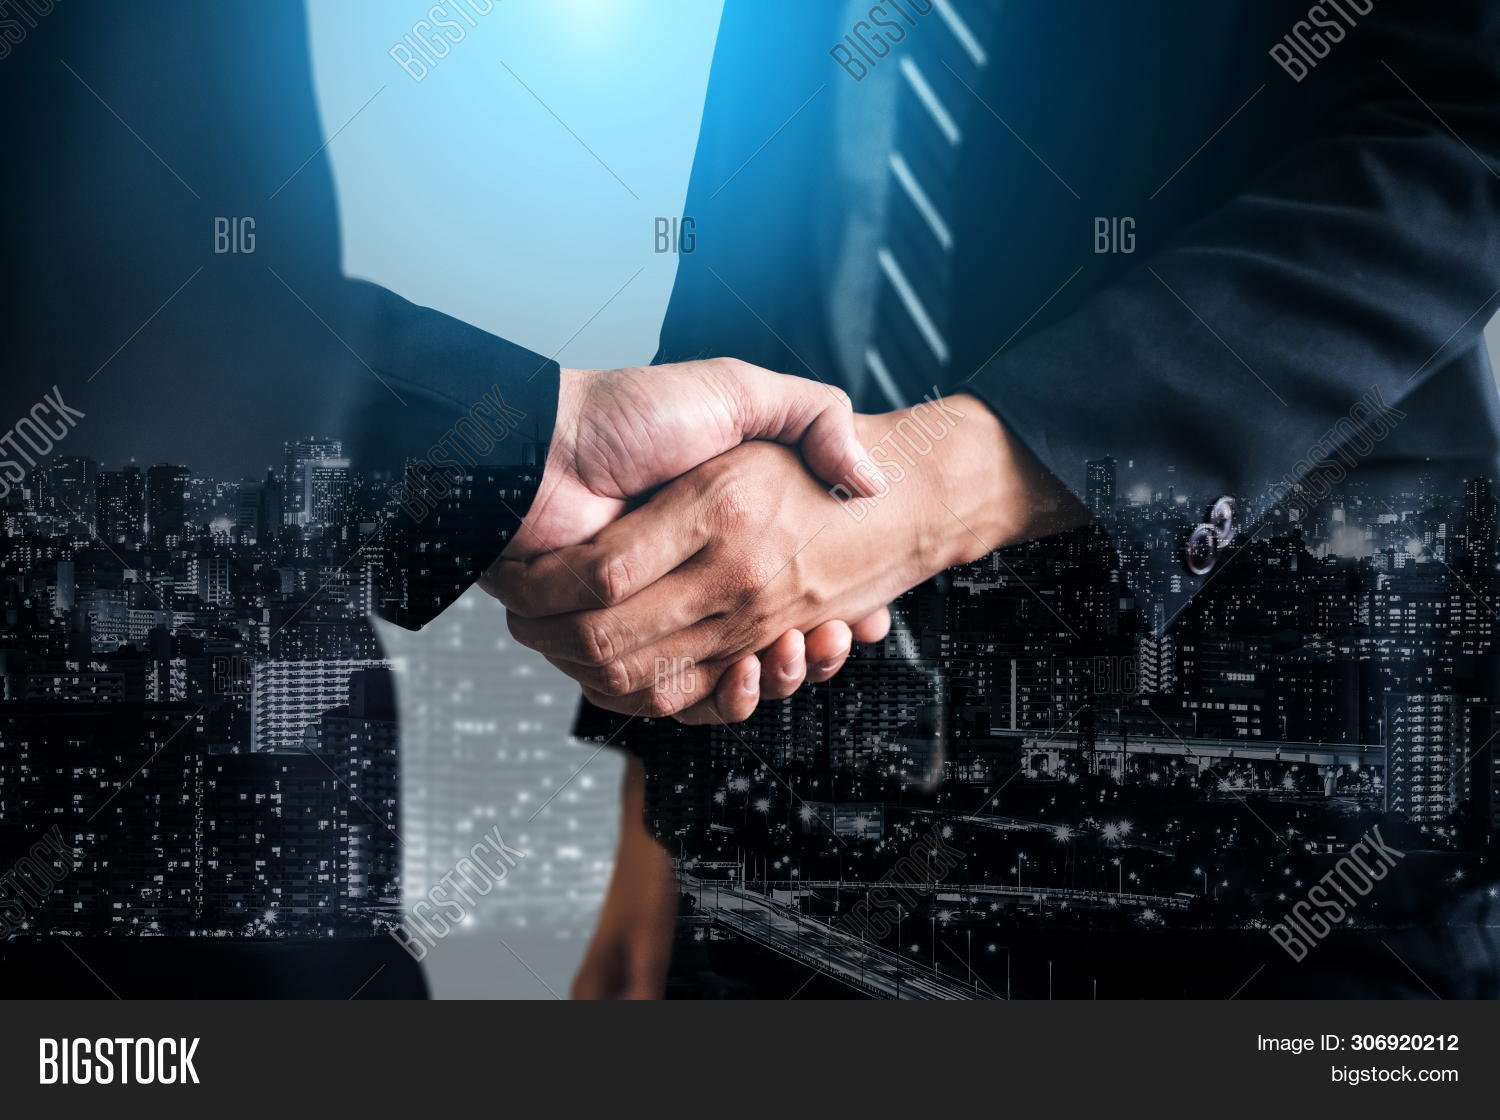 agree,agreement,background,black,business,businessman,businessmen,businesspeople,businesswoman,businesswomen,city,cityscape,collaboration,commerce,company,concept,contract,cooperation,corporate,creative,deal,double,exposure,hand,handshake,happy,industry,job,lawyer,man,meeting,men,office,partner,partnership,people,professional,sales,shake,staff,success,successful,support,team,teamwork,technology,trust,trusted,women,work